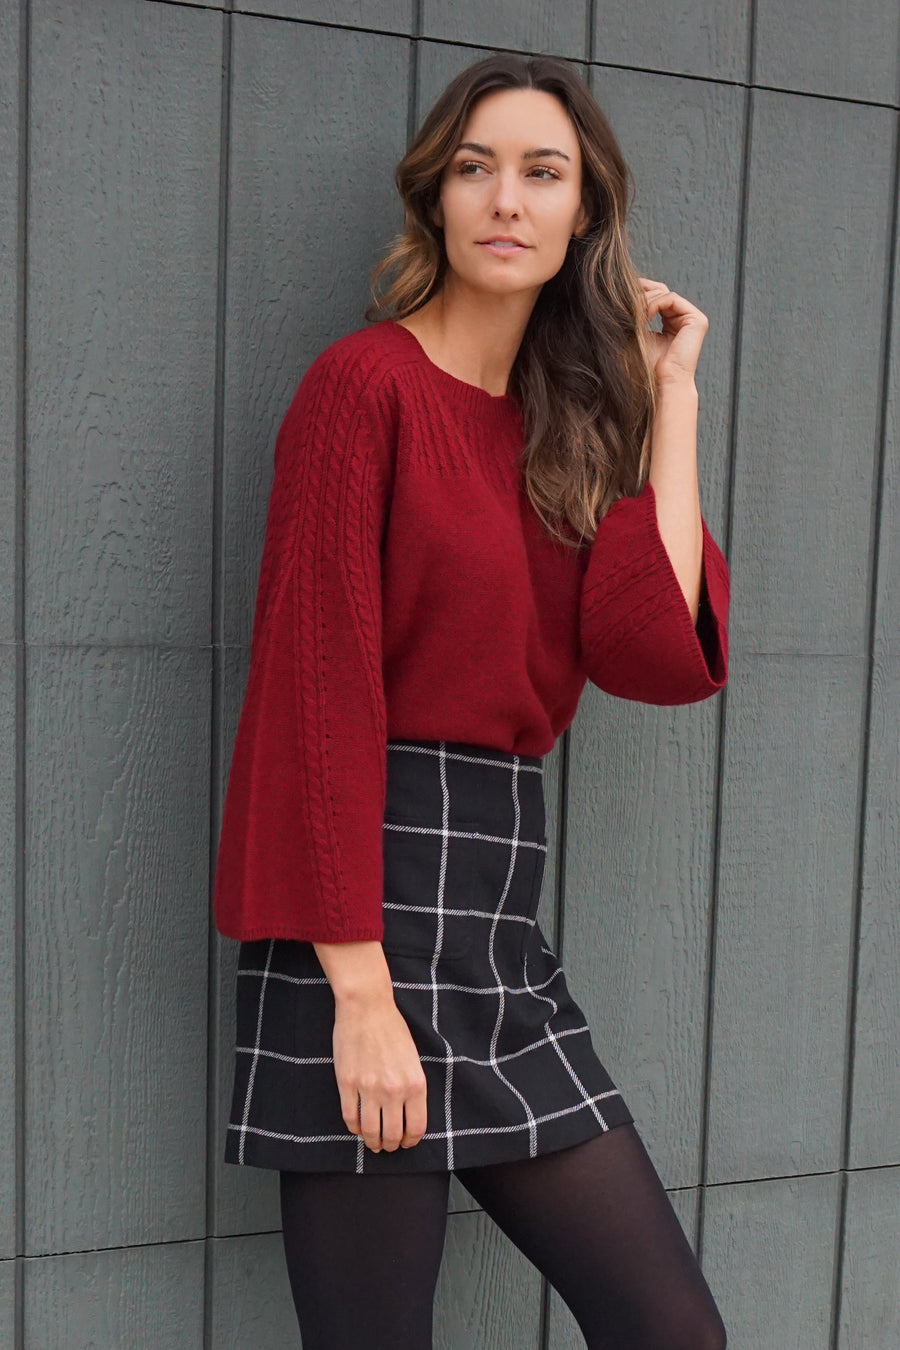 pine cashmere Brianna bell sleeved sweater in crimson Anthropologie cashmere wool blend